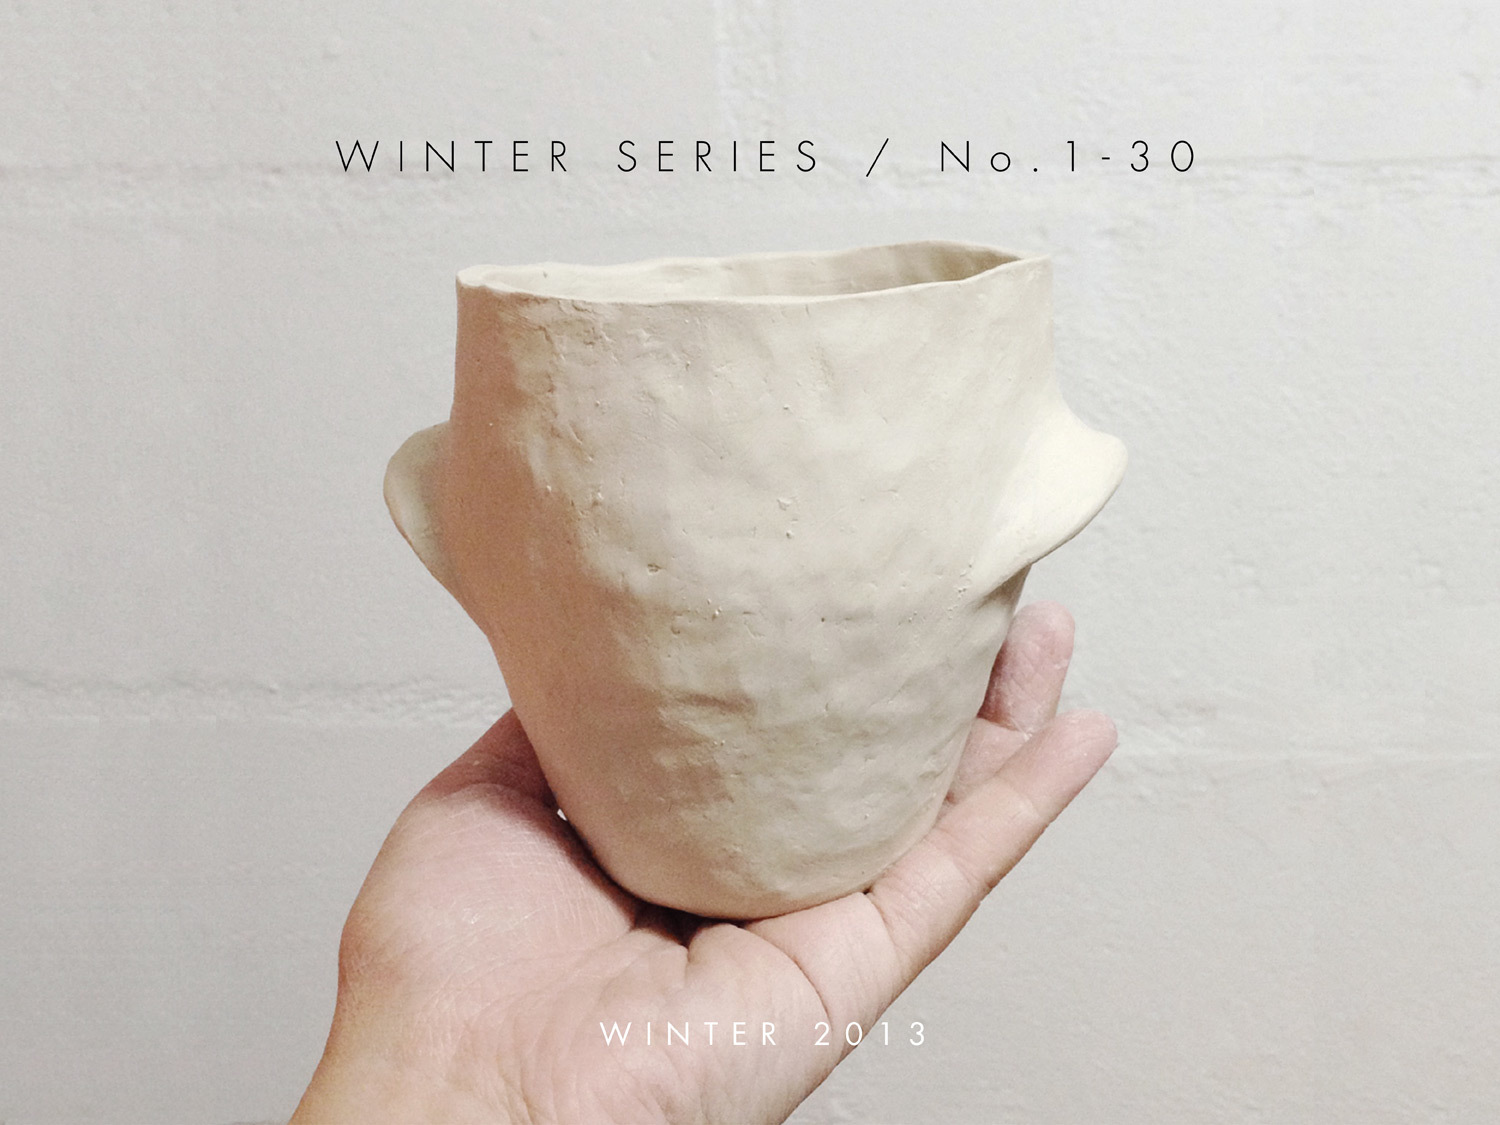 Winter Series / No. 1 - 30 / 2013 / Bailey Doesn't Bark